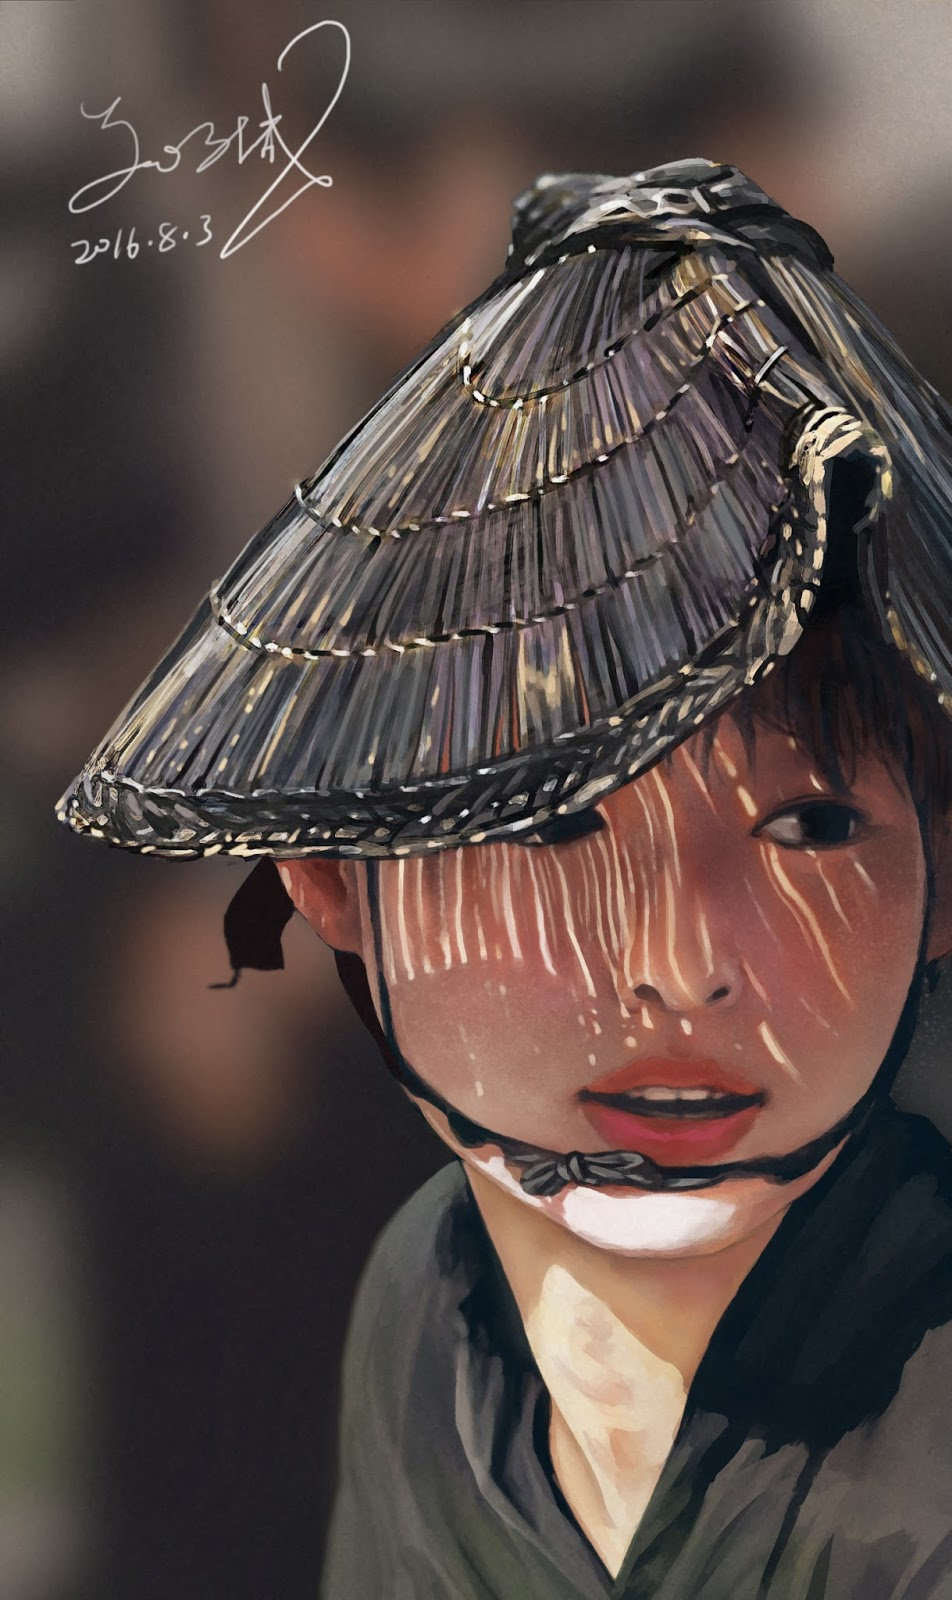 Art Works by Chinese Illustrator Eli Chang